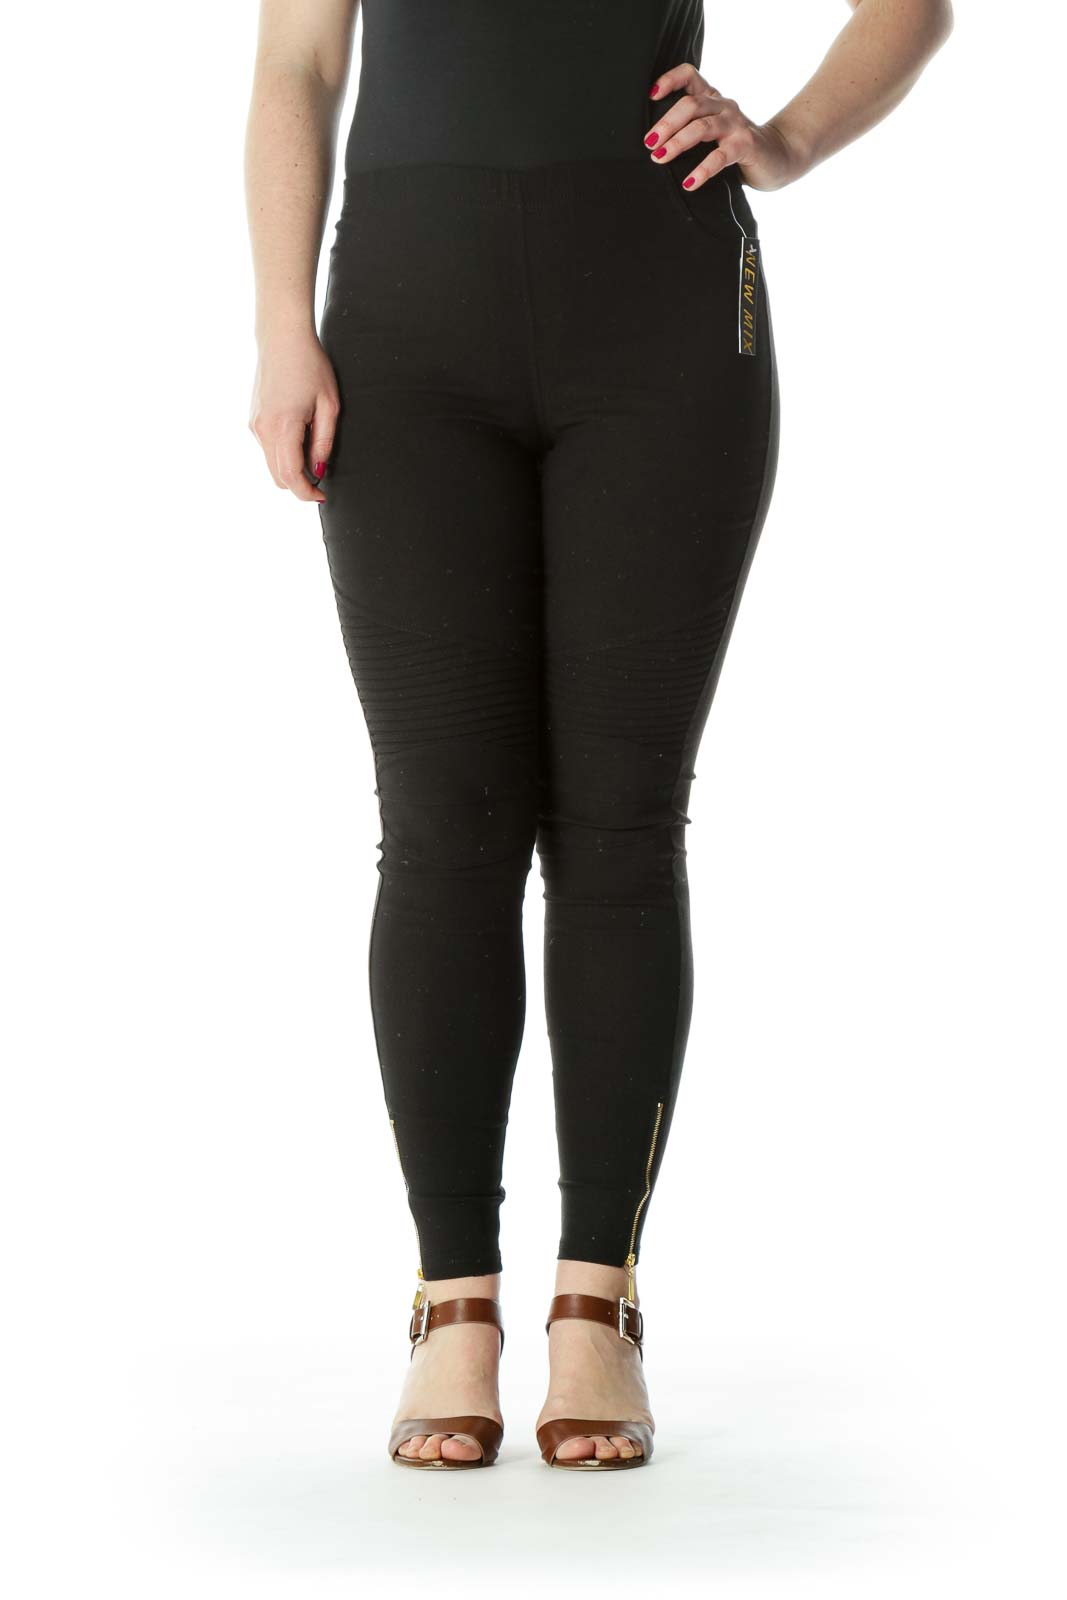 Black Slim Fit Gold Zipper Detail Leggings